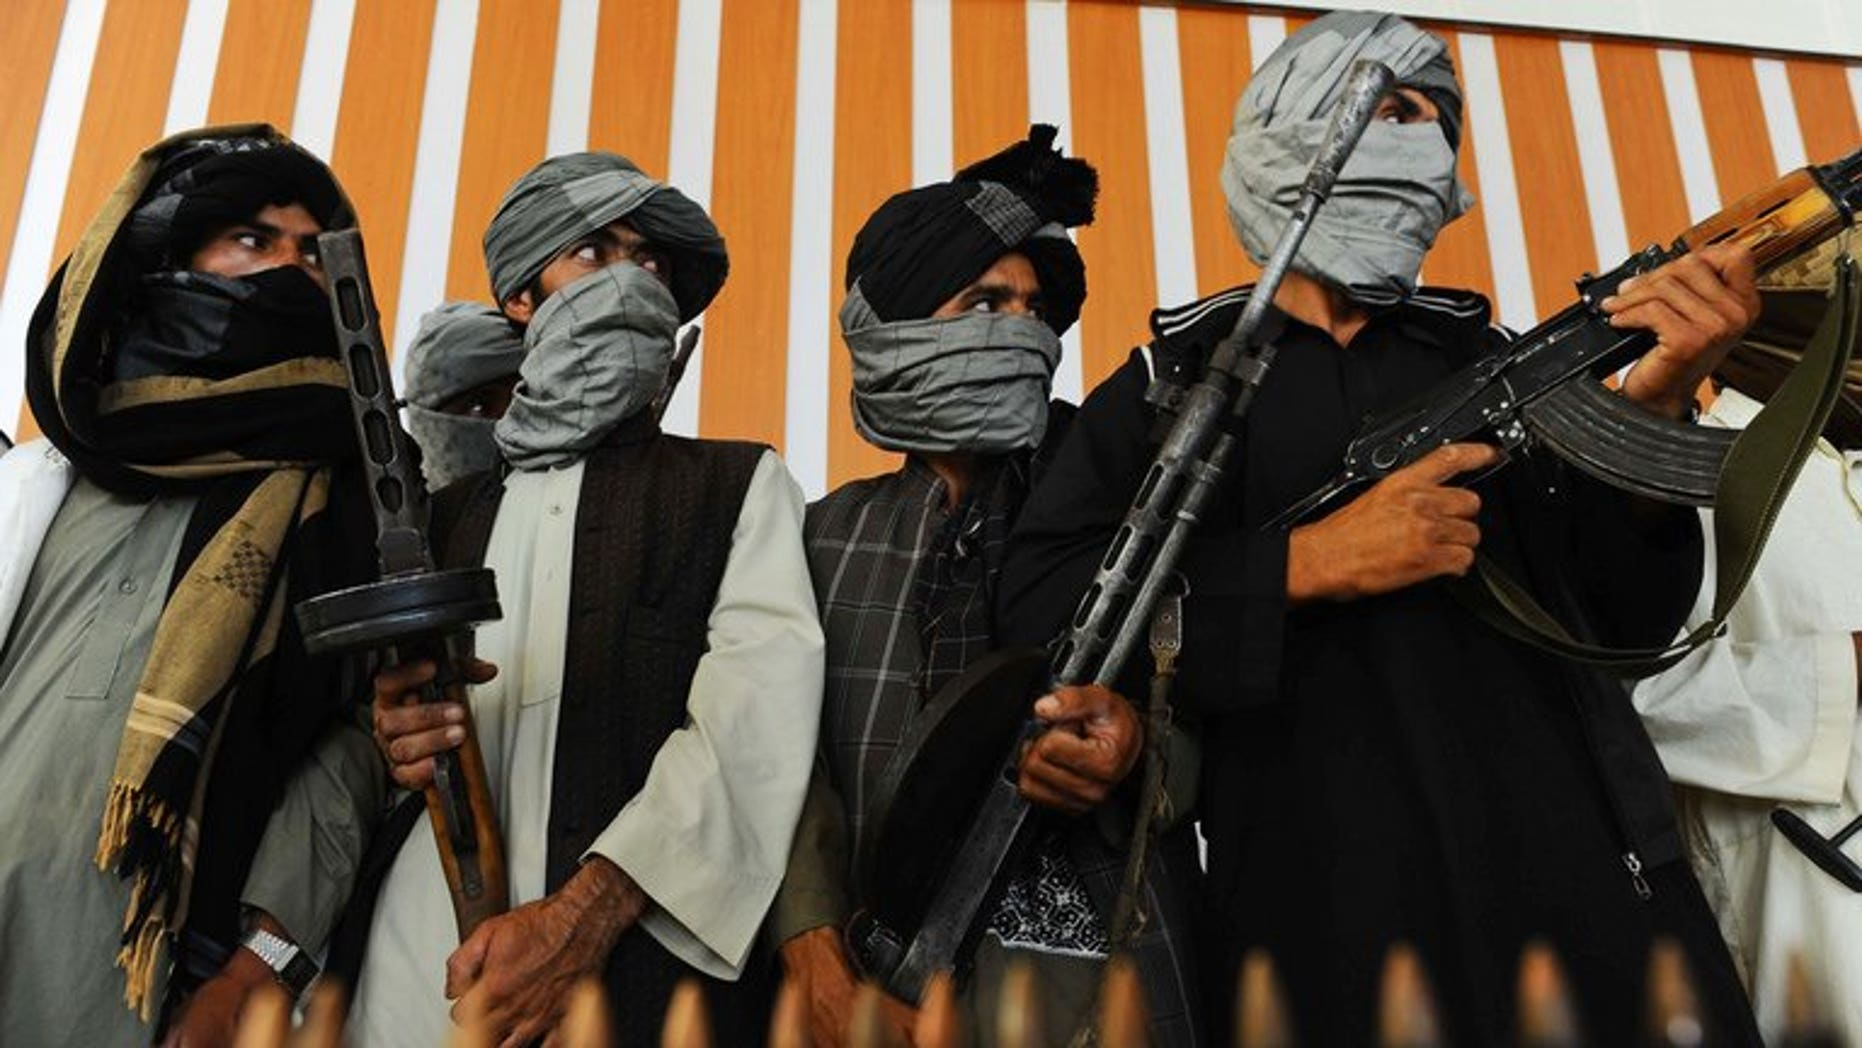 Former Taliban fighters stand with their weapons during a ceremony after joining Afghan government forces in Herat on August 7, 2013. At least 17 civilians have been killed in multiple Taliban attacks in Afghanistan, officials said Saturday, underscoring increasing insecurity for ordinary people as foreign forces complete their withdrawal next year.